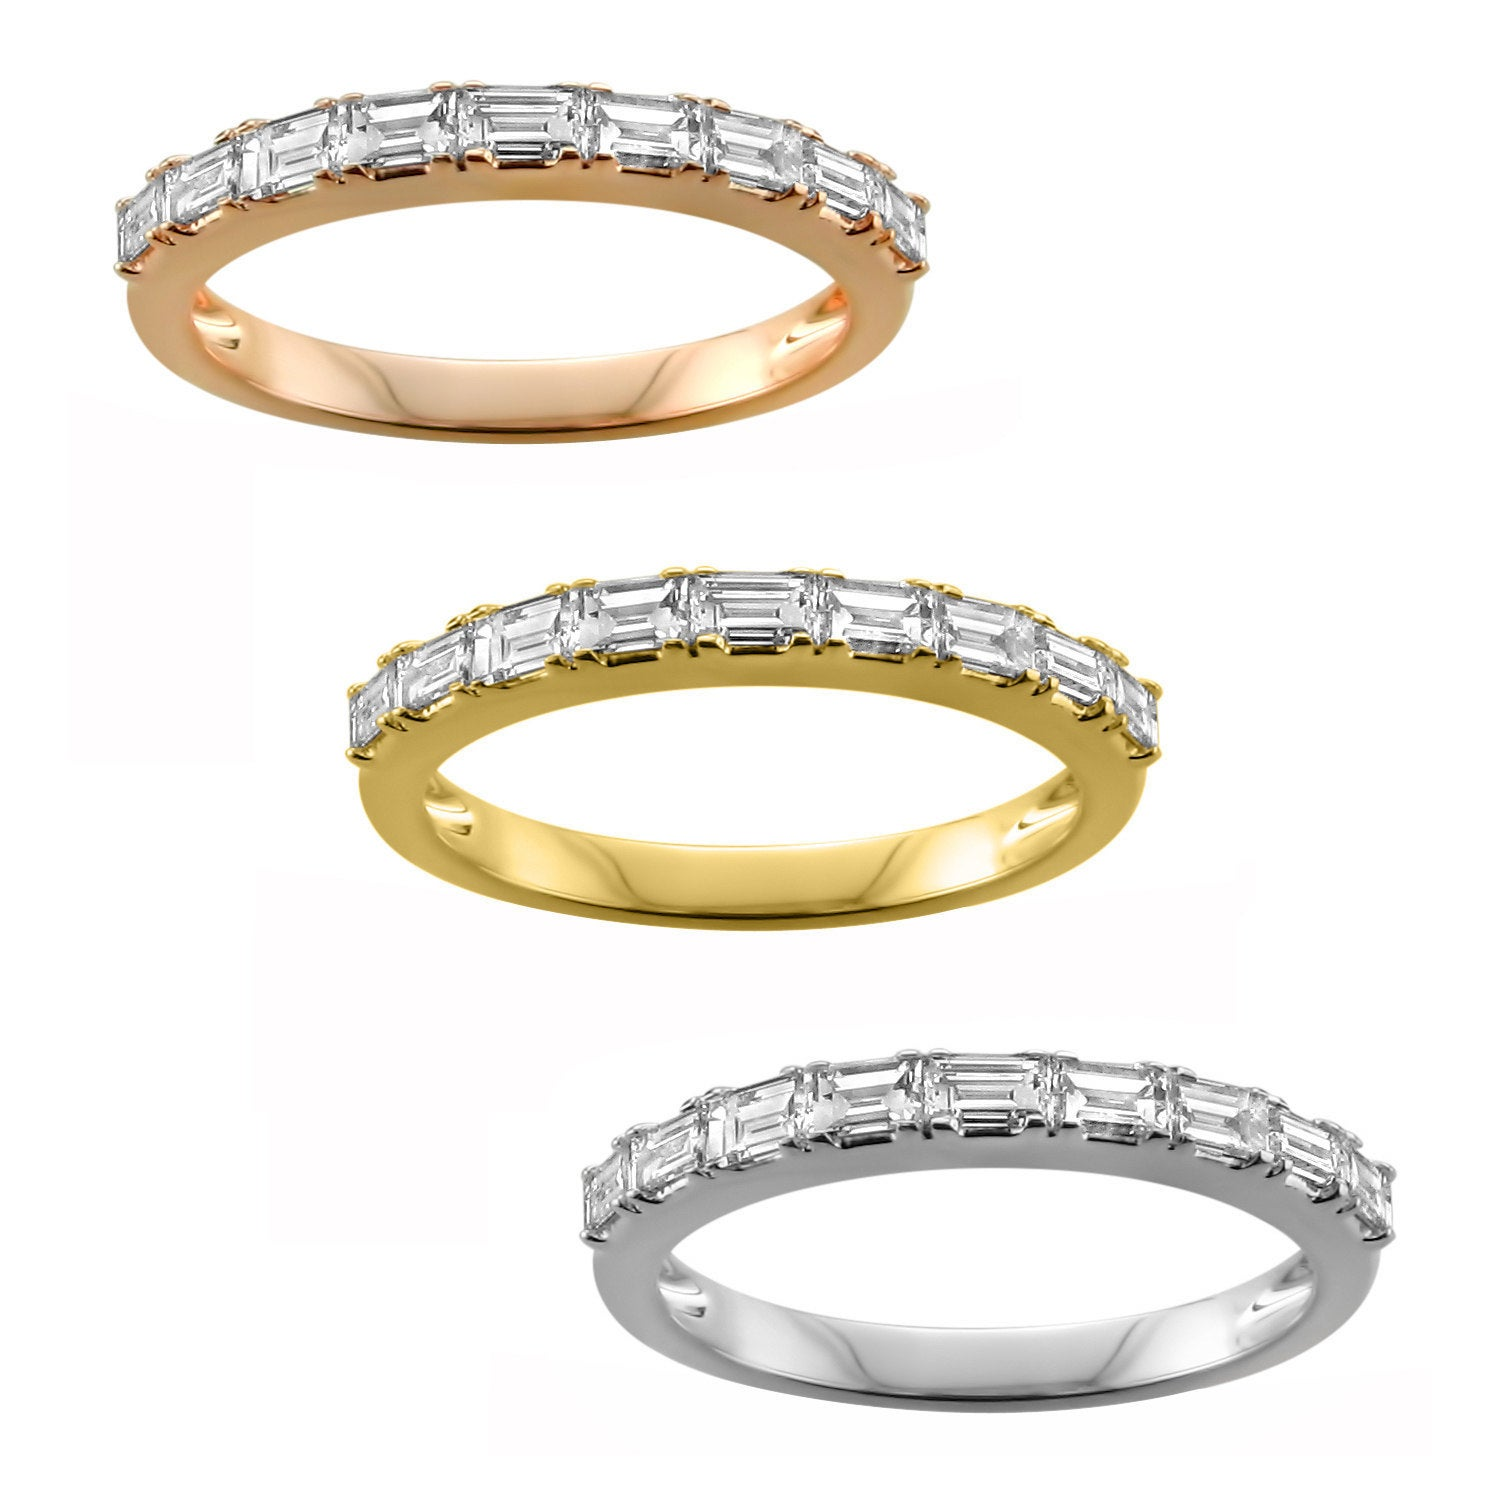 when wedding ring brilliant in and back diamonds deco the art harkening a band tapered set to or designs look engagement for bands sophisticated rings era earth platinum diamond sleek baguette make beautiful news